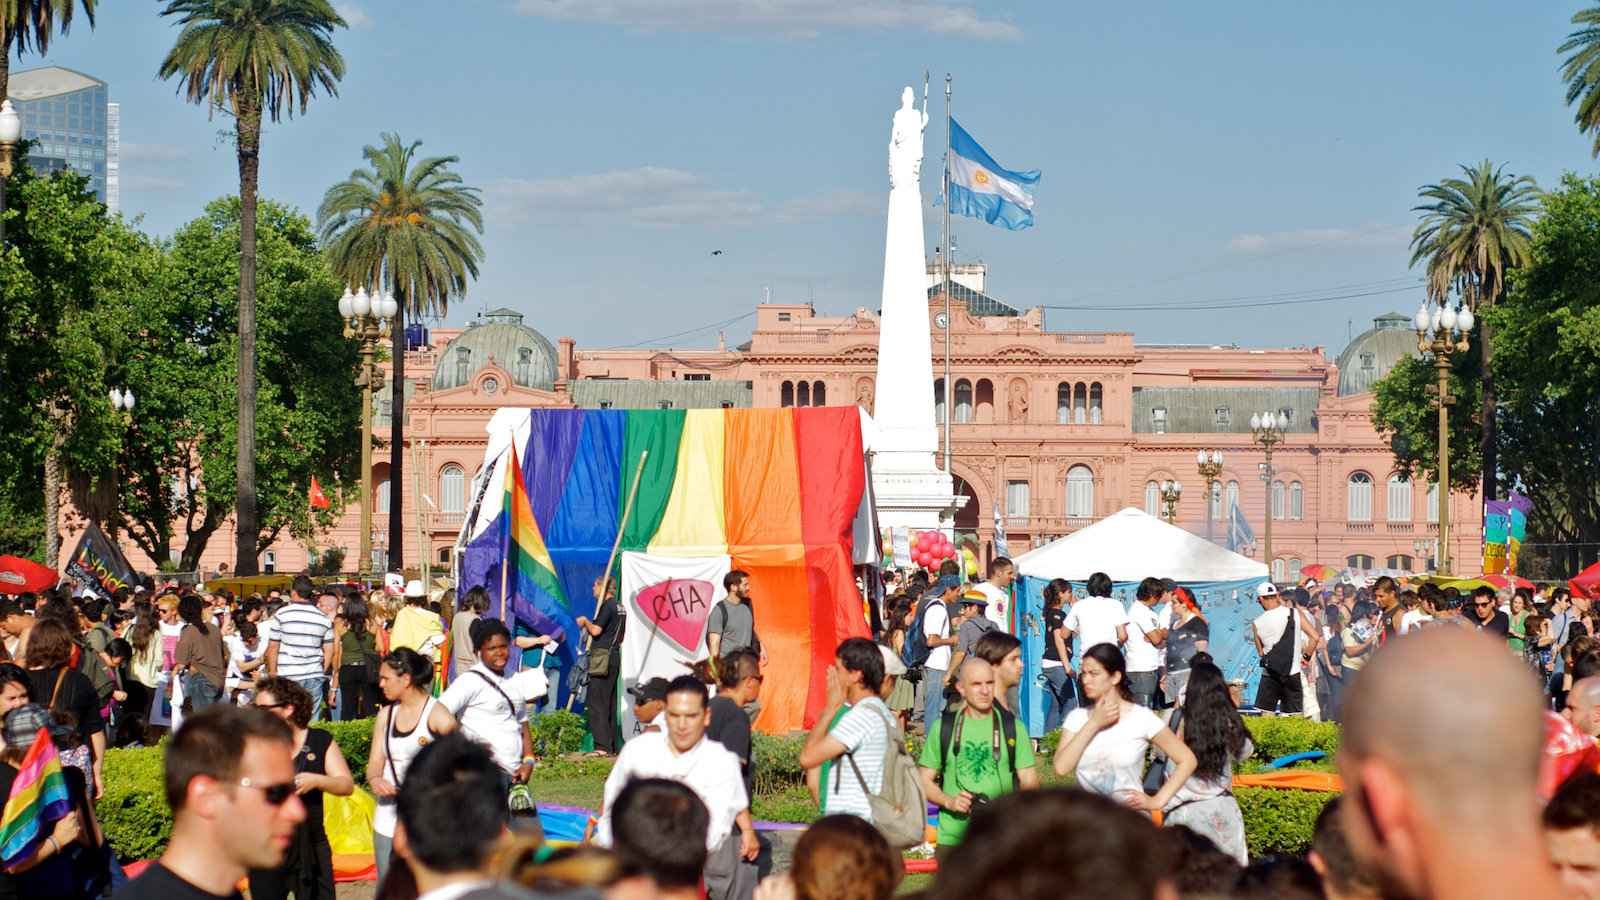 Argentina has some of the most progressive gay rights laws in South America